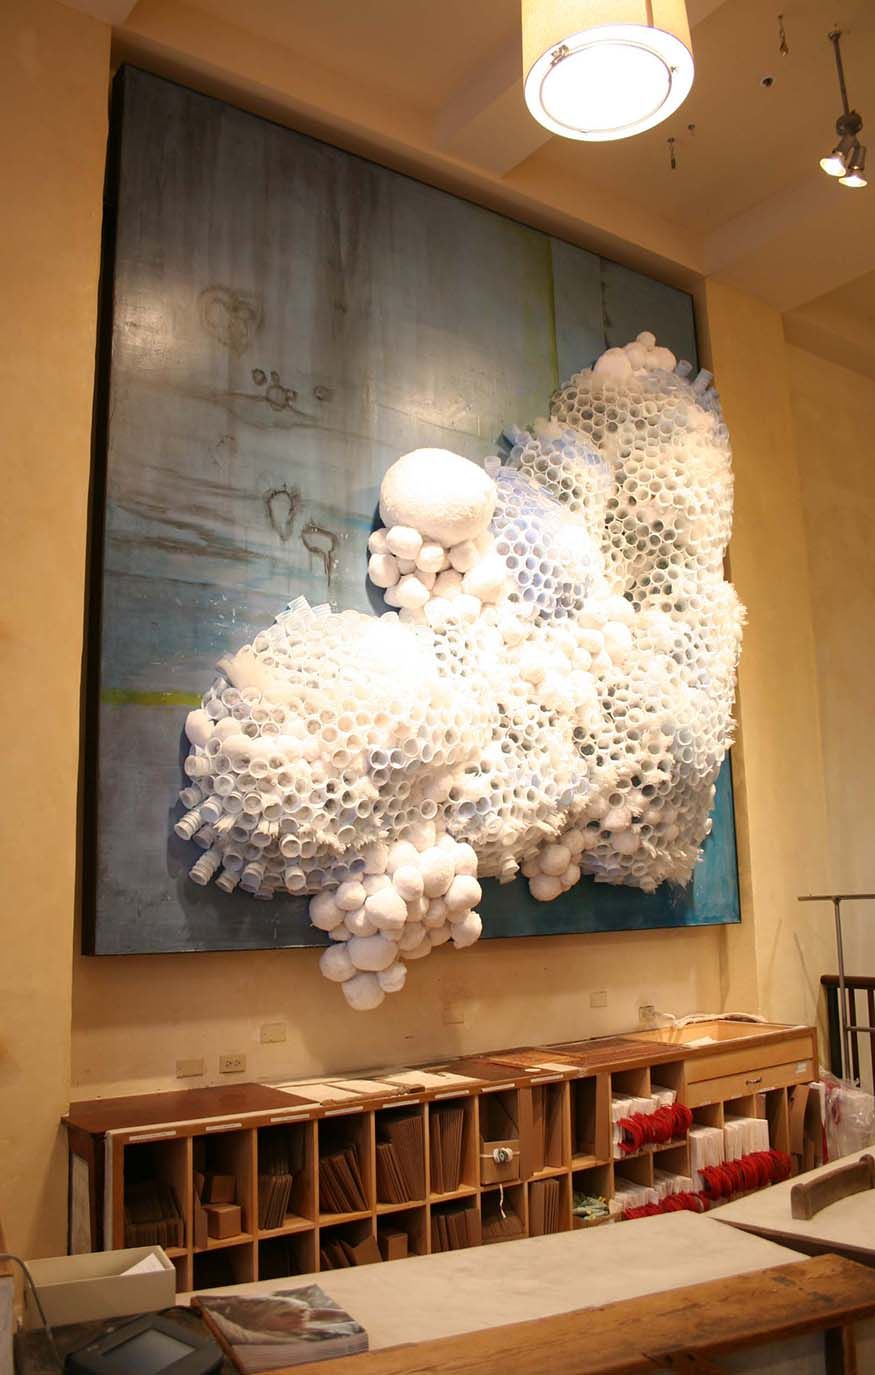 Anthropologie In-Store Displays Winter 2009 (kinda looks like fungus...I dunno)